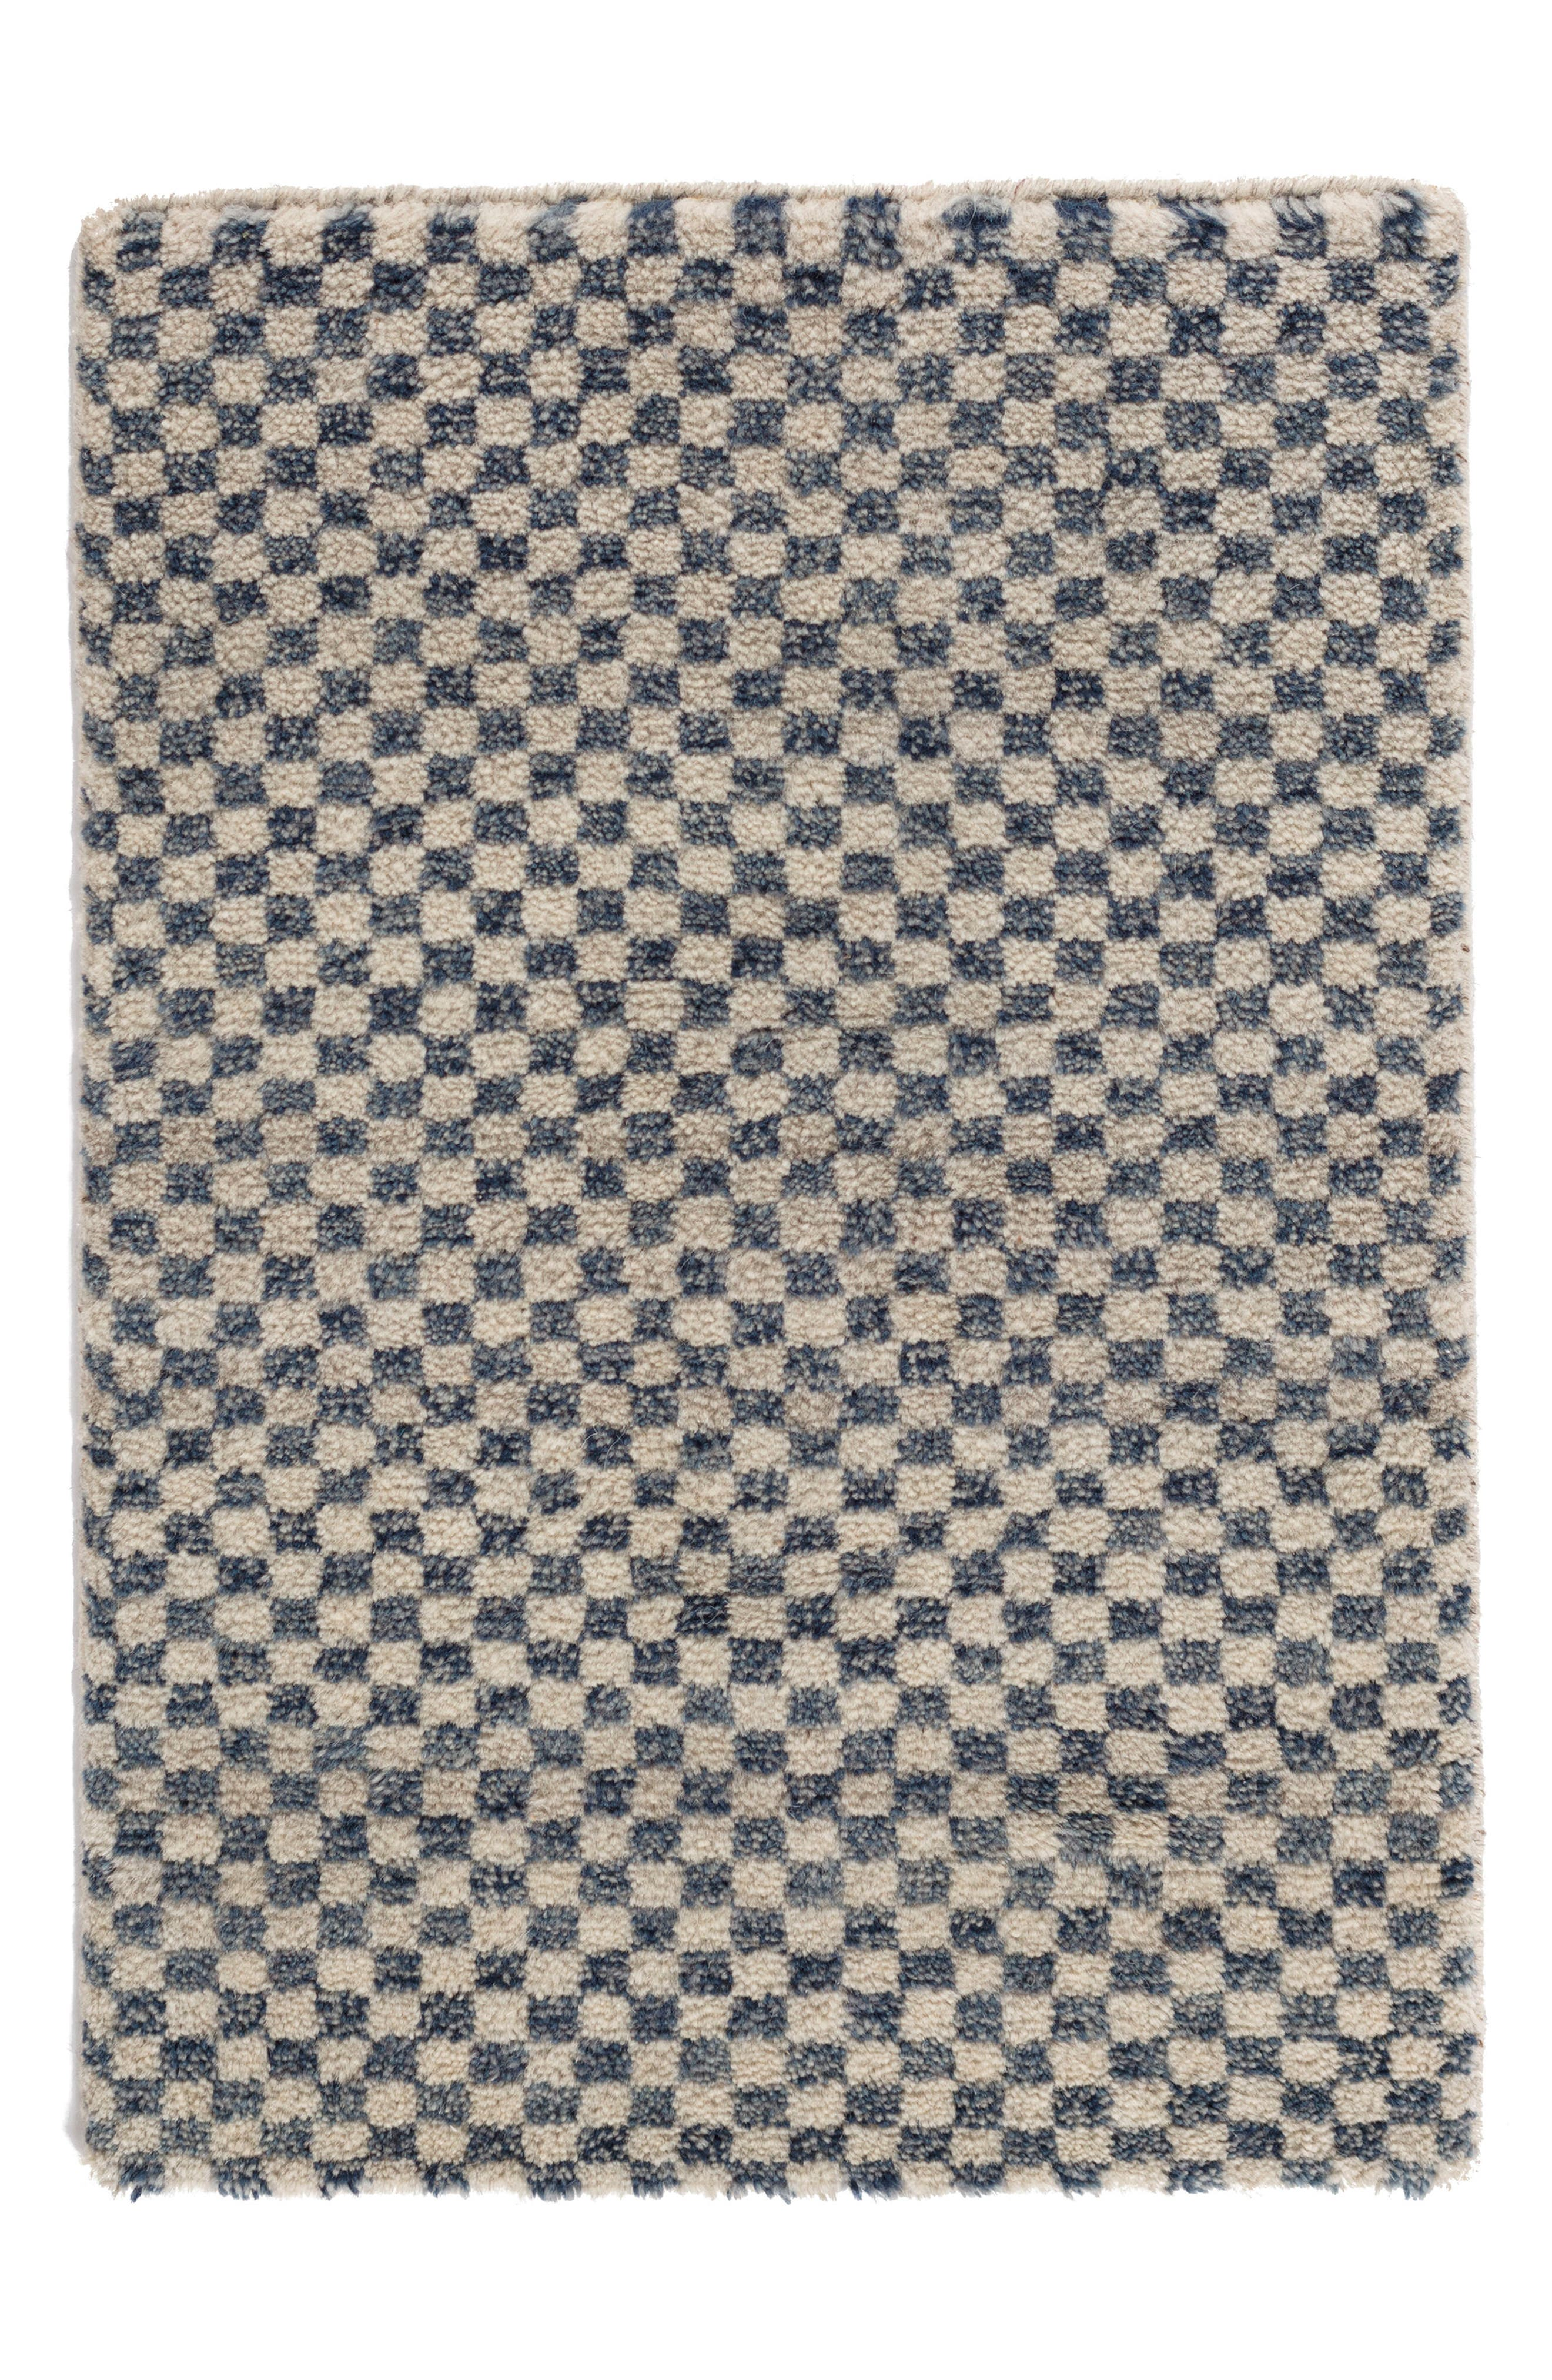 Citra Hand Knotted Rug,                             Main thumbnail 1, color,                             Denim